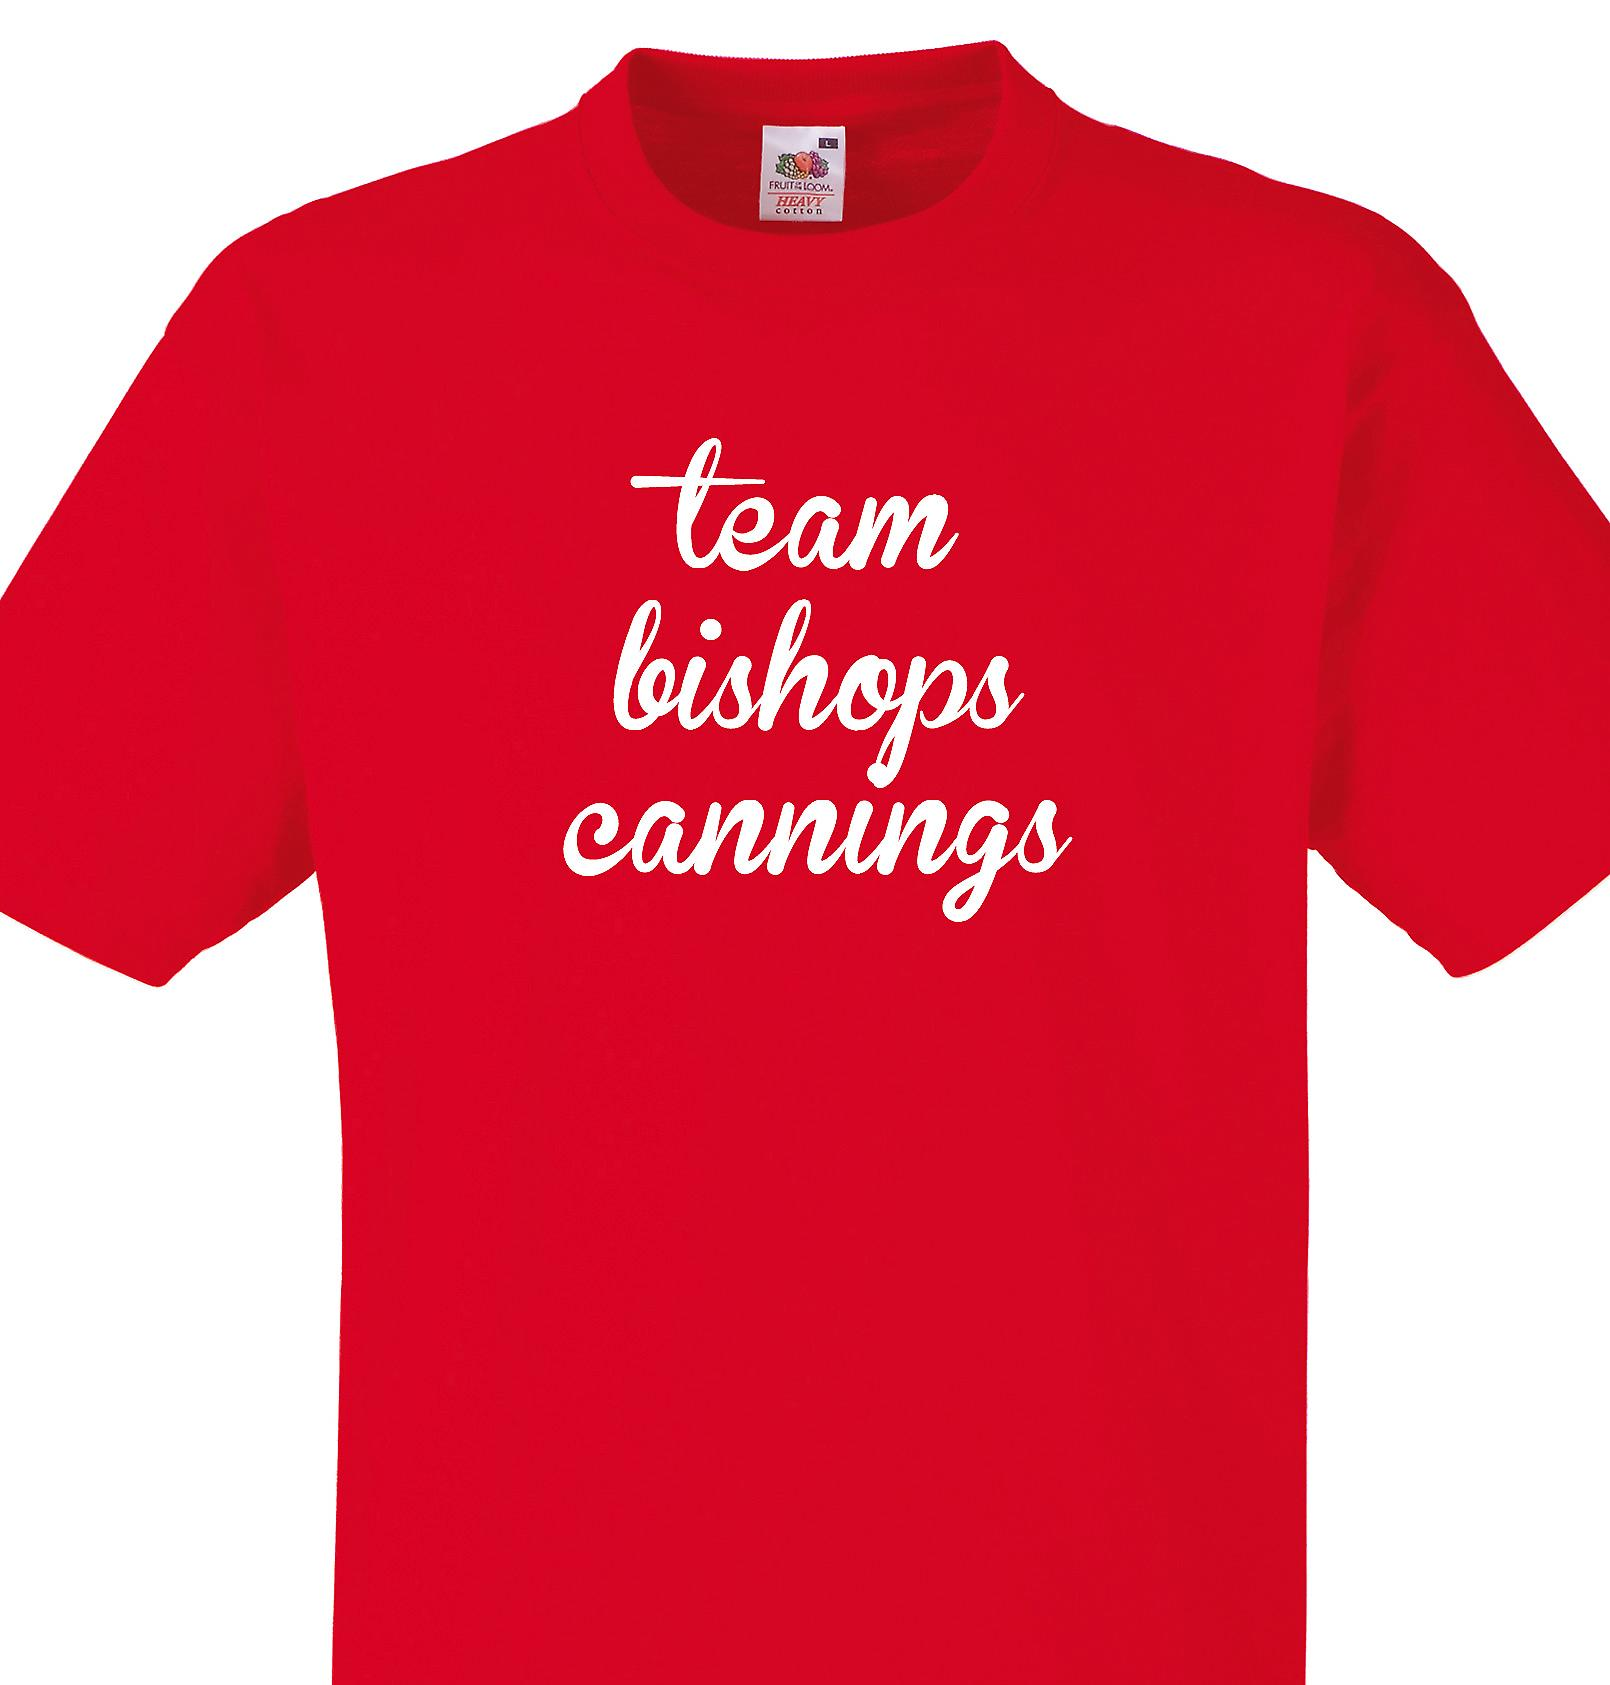 Team Bishops cannings Red T shirt